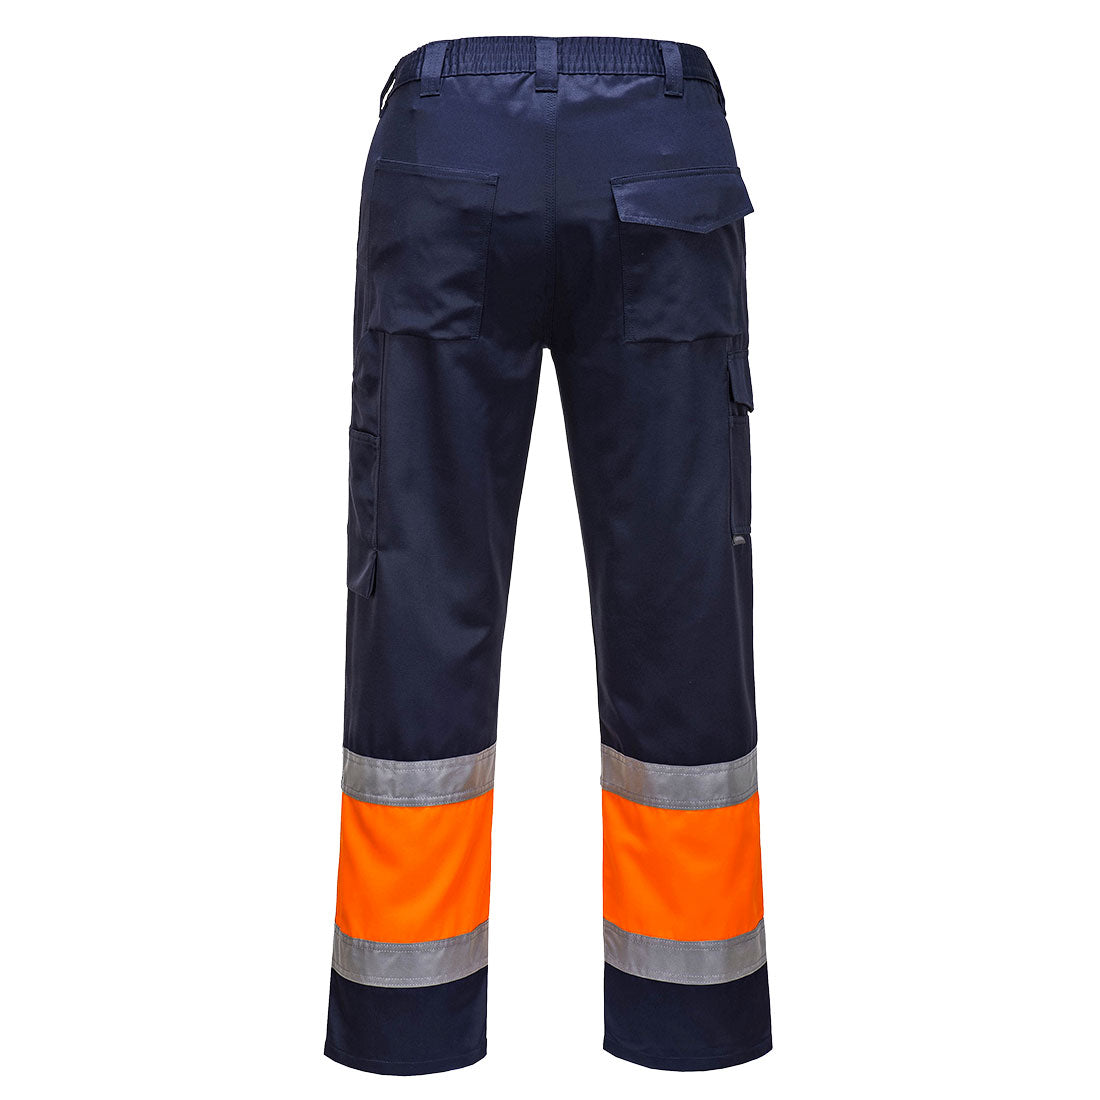 Portwest Hi-Vis Two Tone Combat Trousers E049